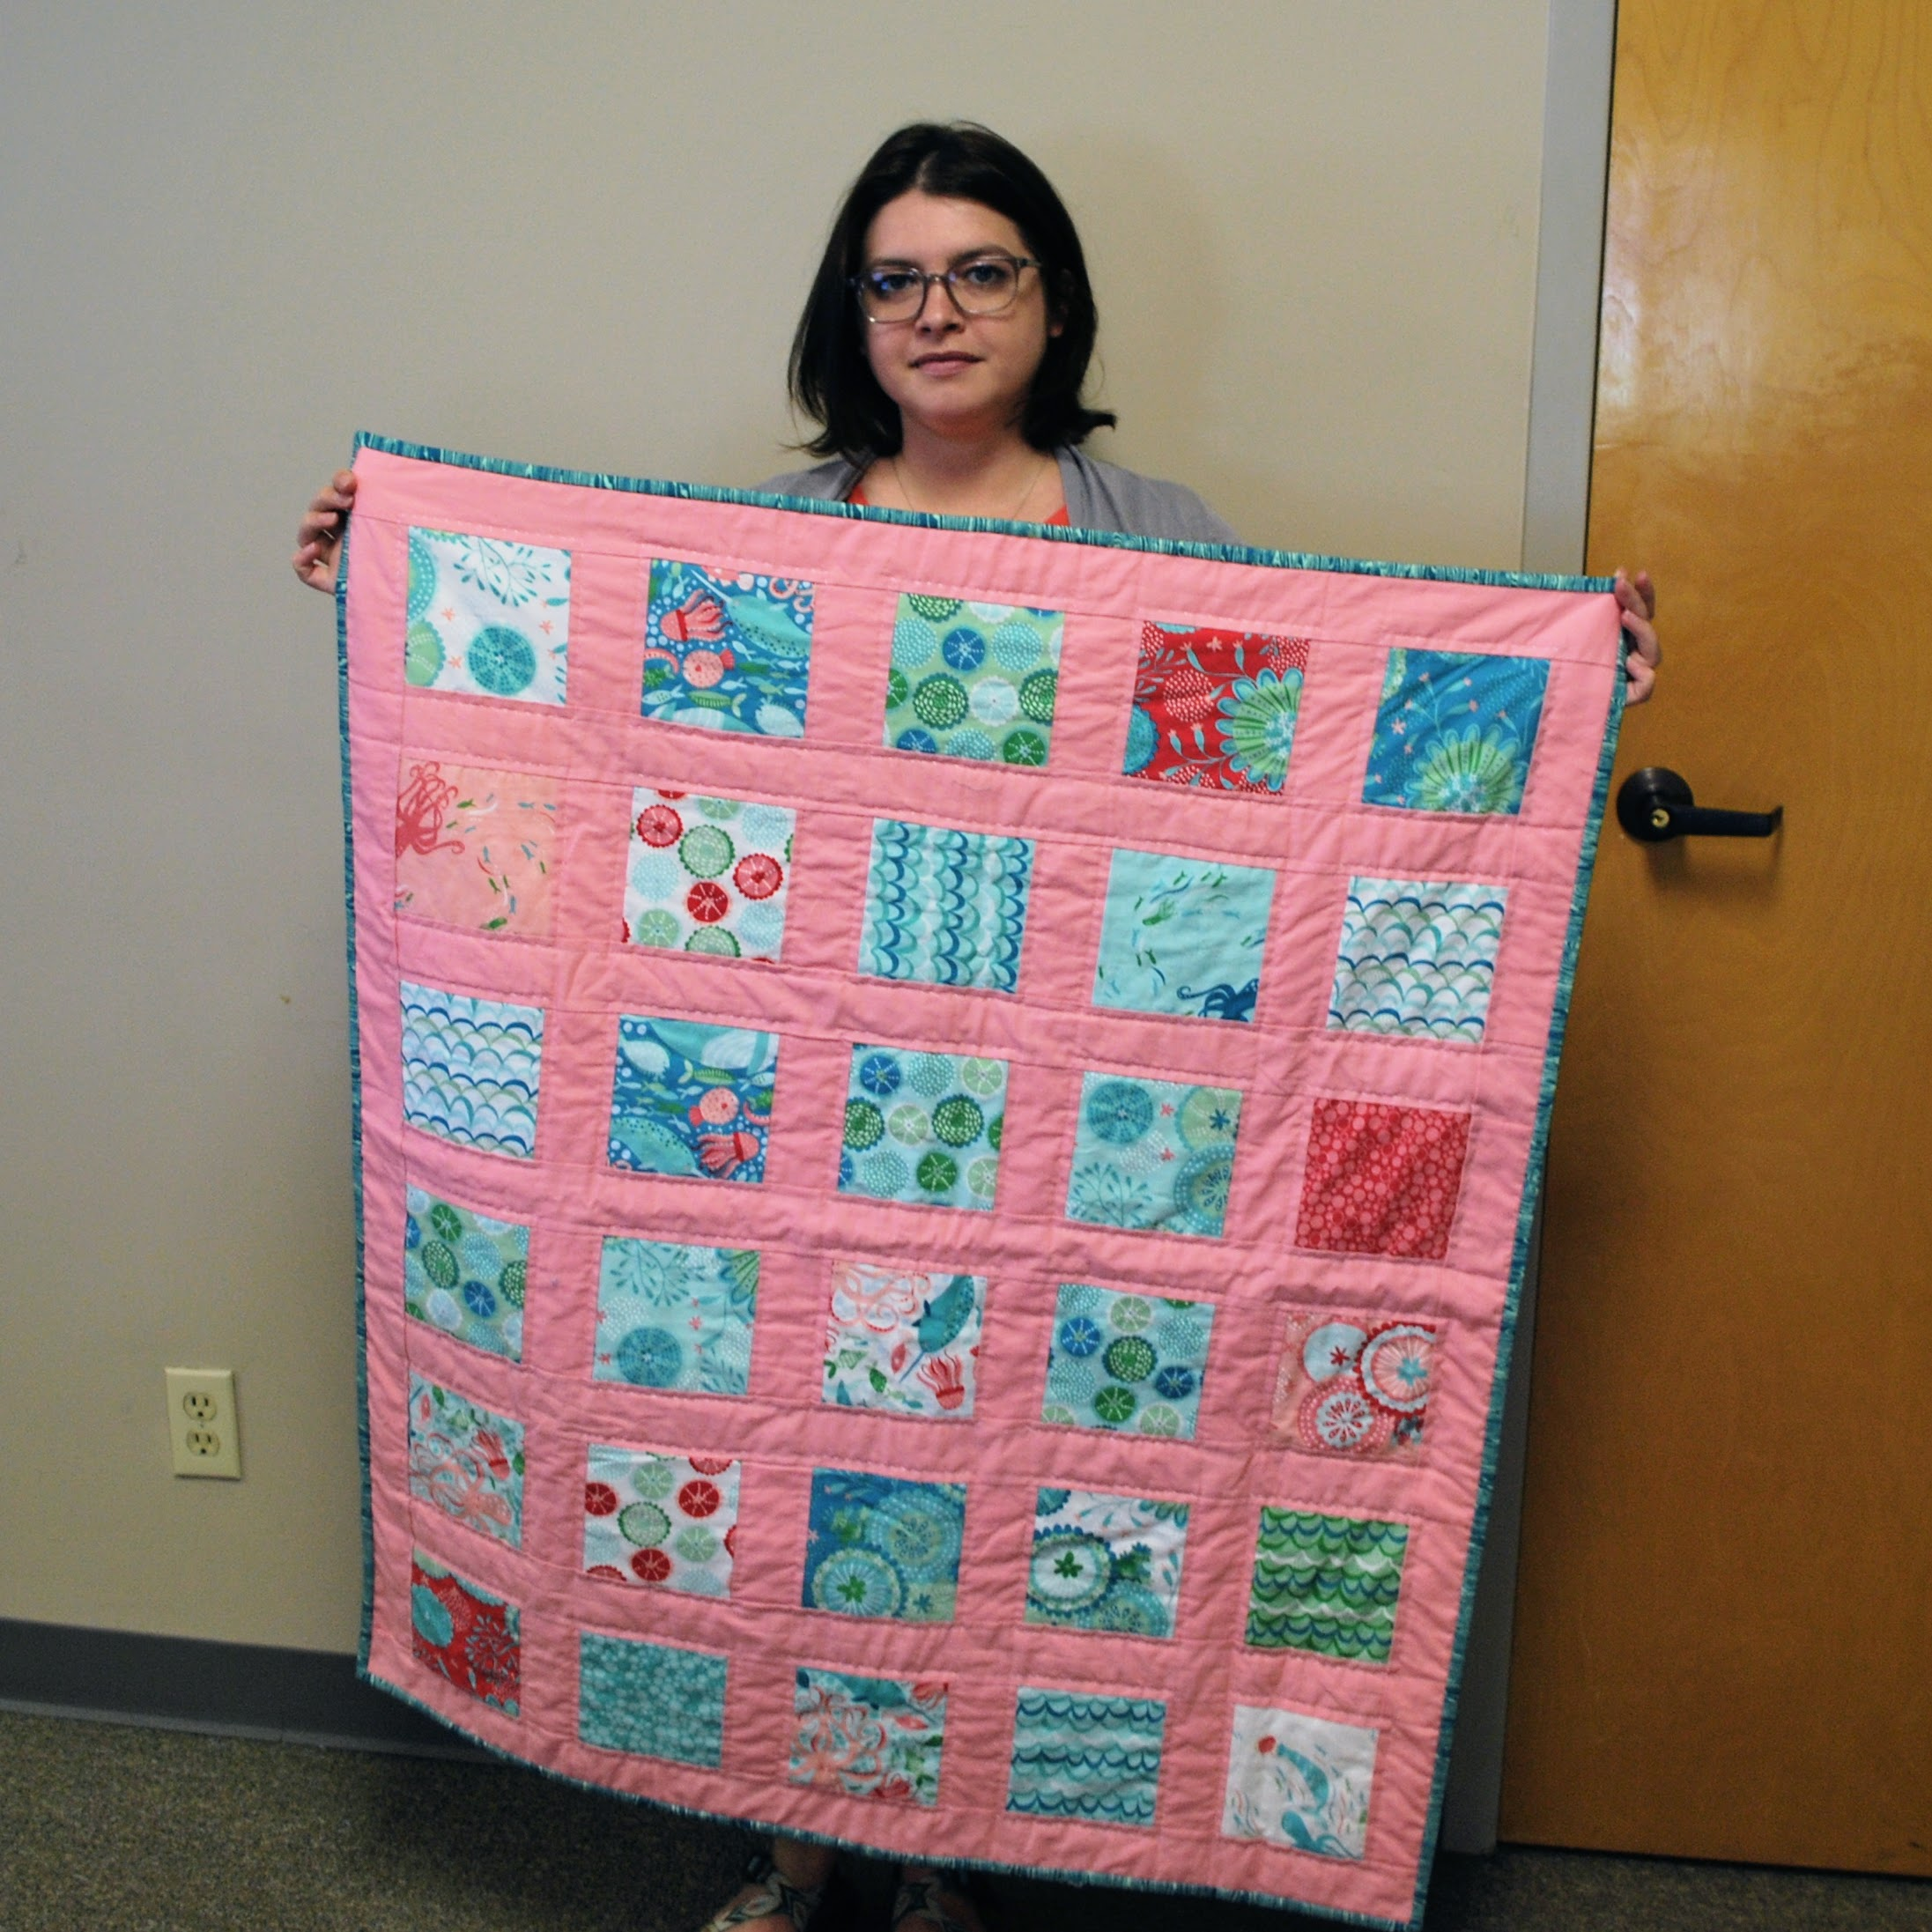 Quilt by Samantha Eaton